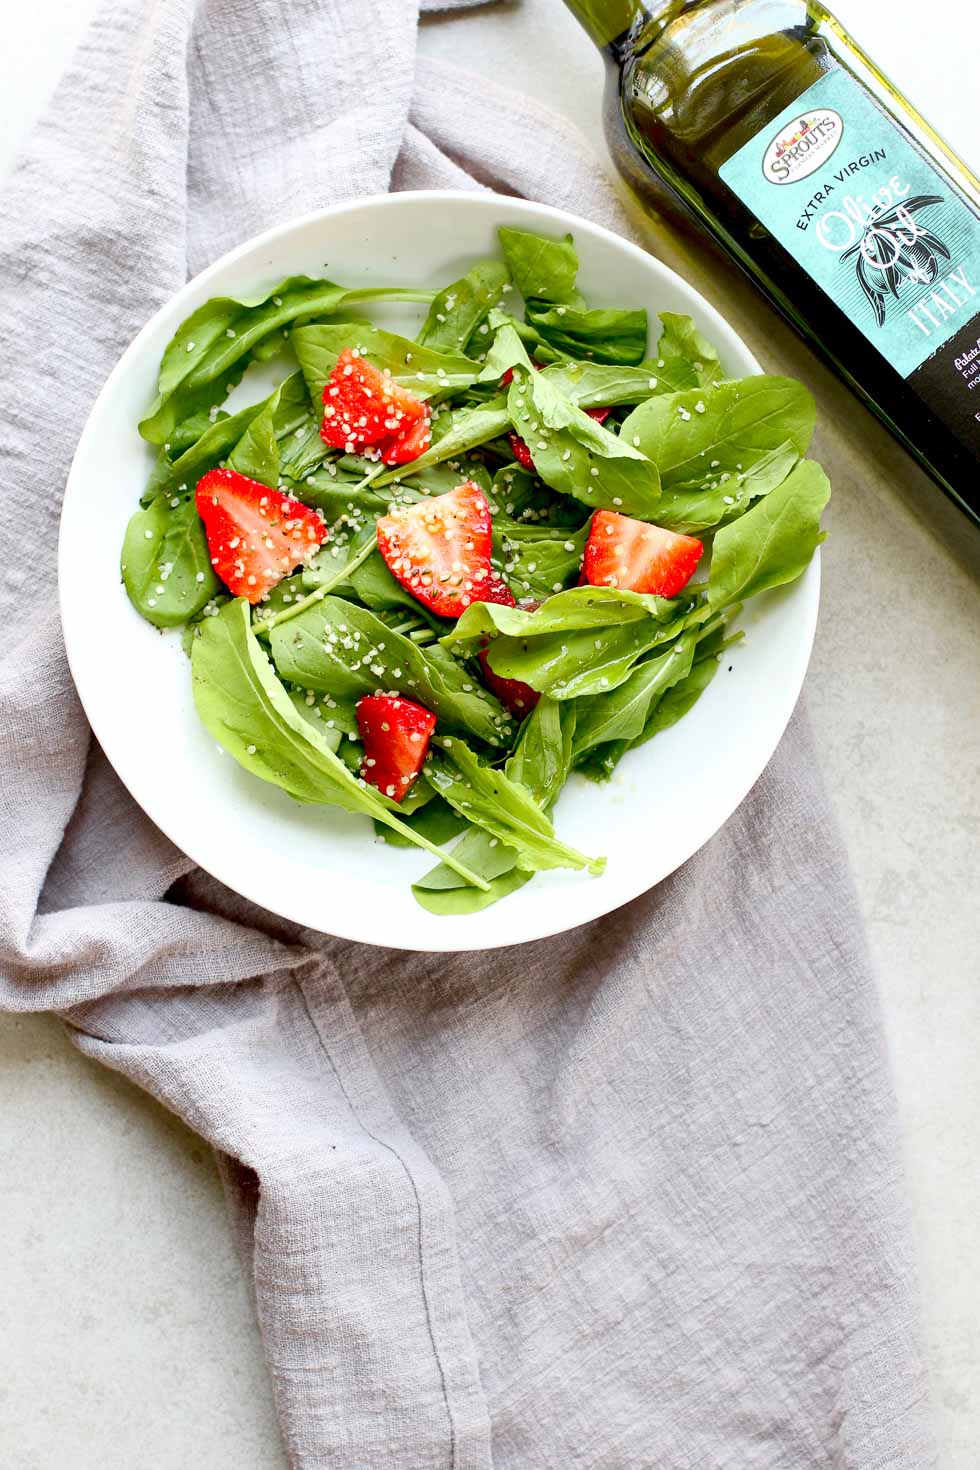 trawberry Arugula Salad with Hemp Seed Hero with Bottle Extra Virgin Olive Oil